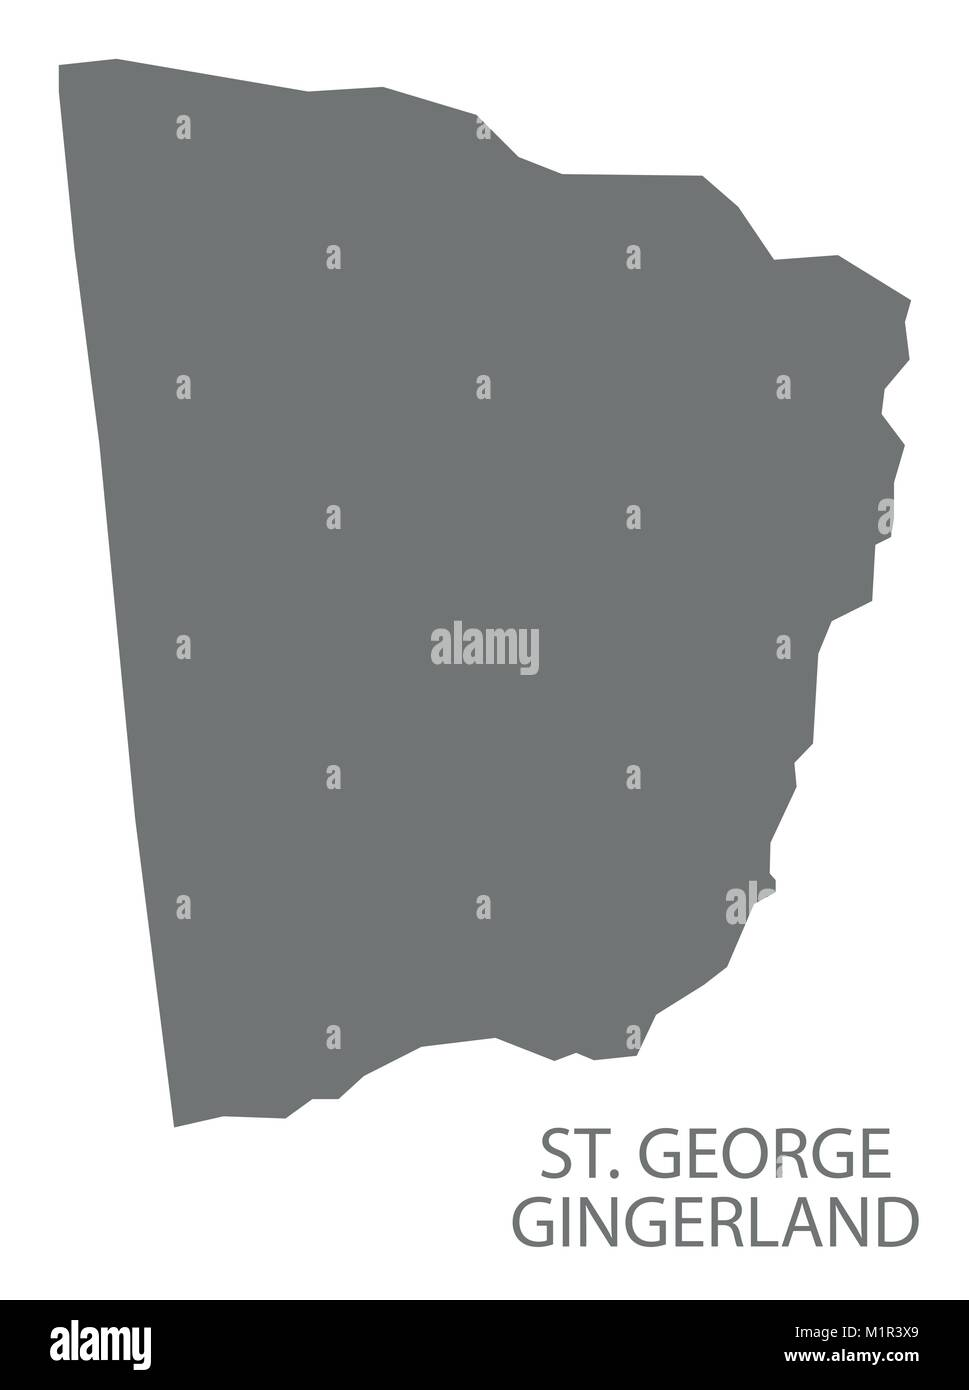 St. George Gingerland map grey illustration silhouette shape - Stock Vector